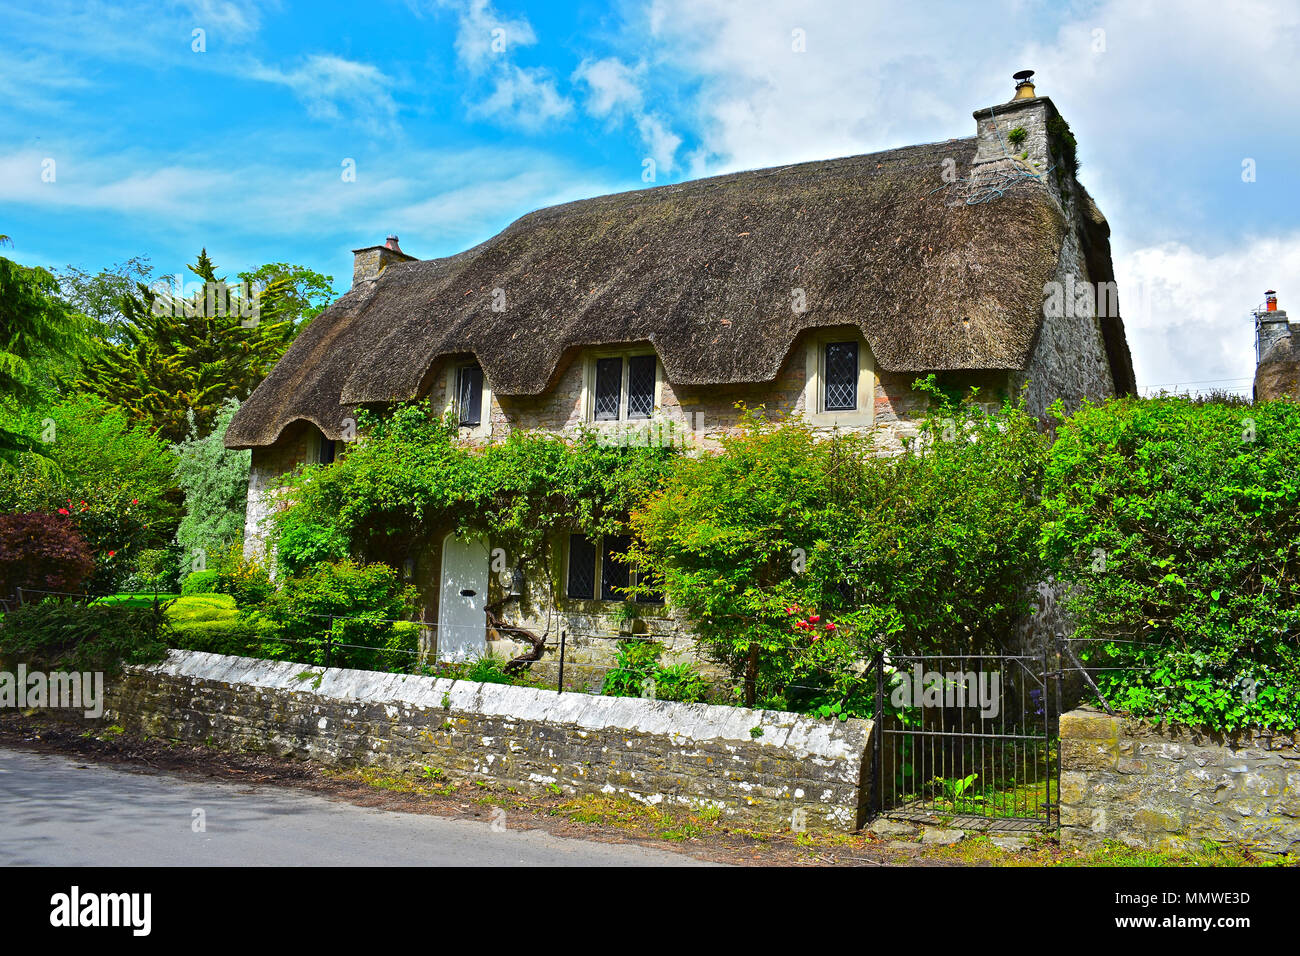 The Pretty Thatched Roof House Known As Church Cottage In The